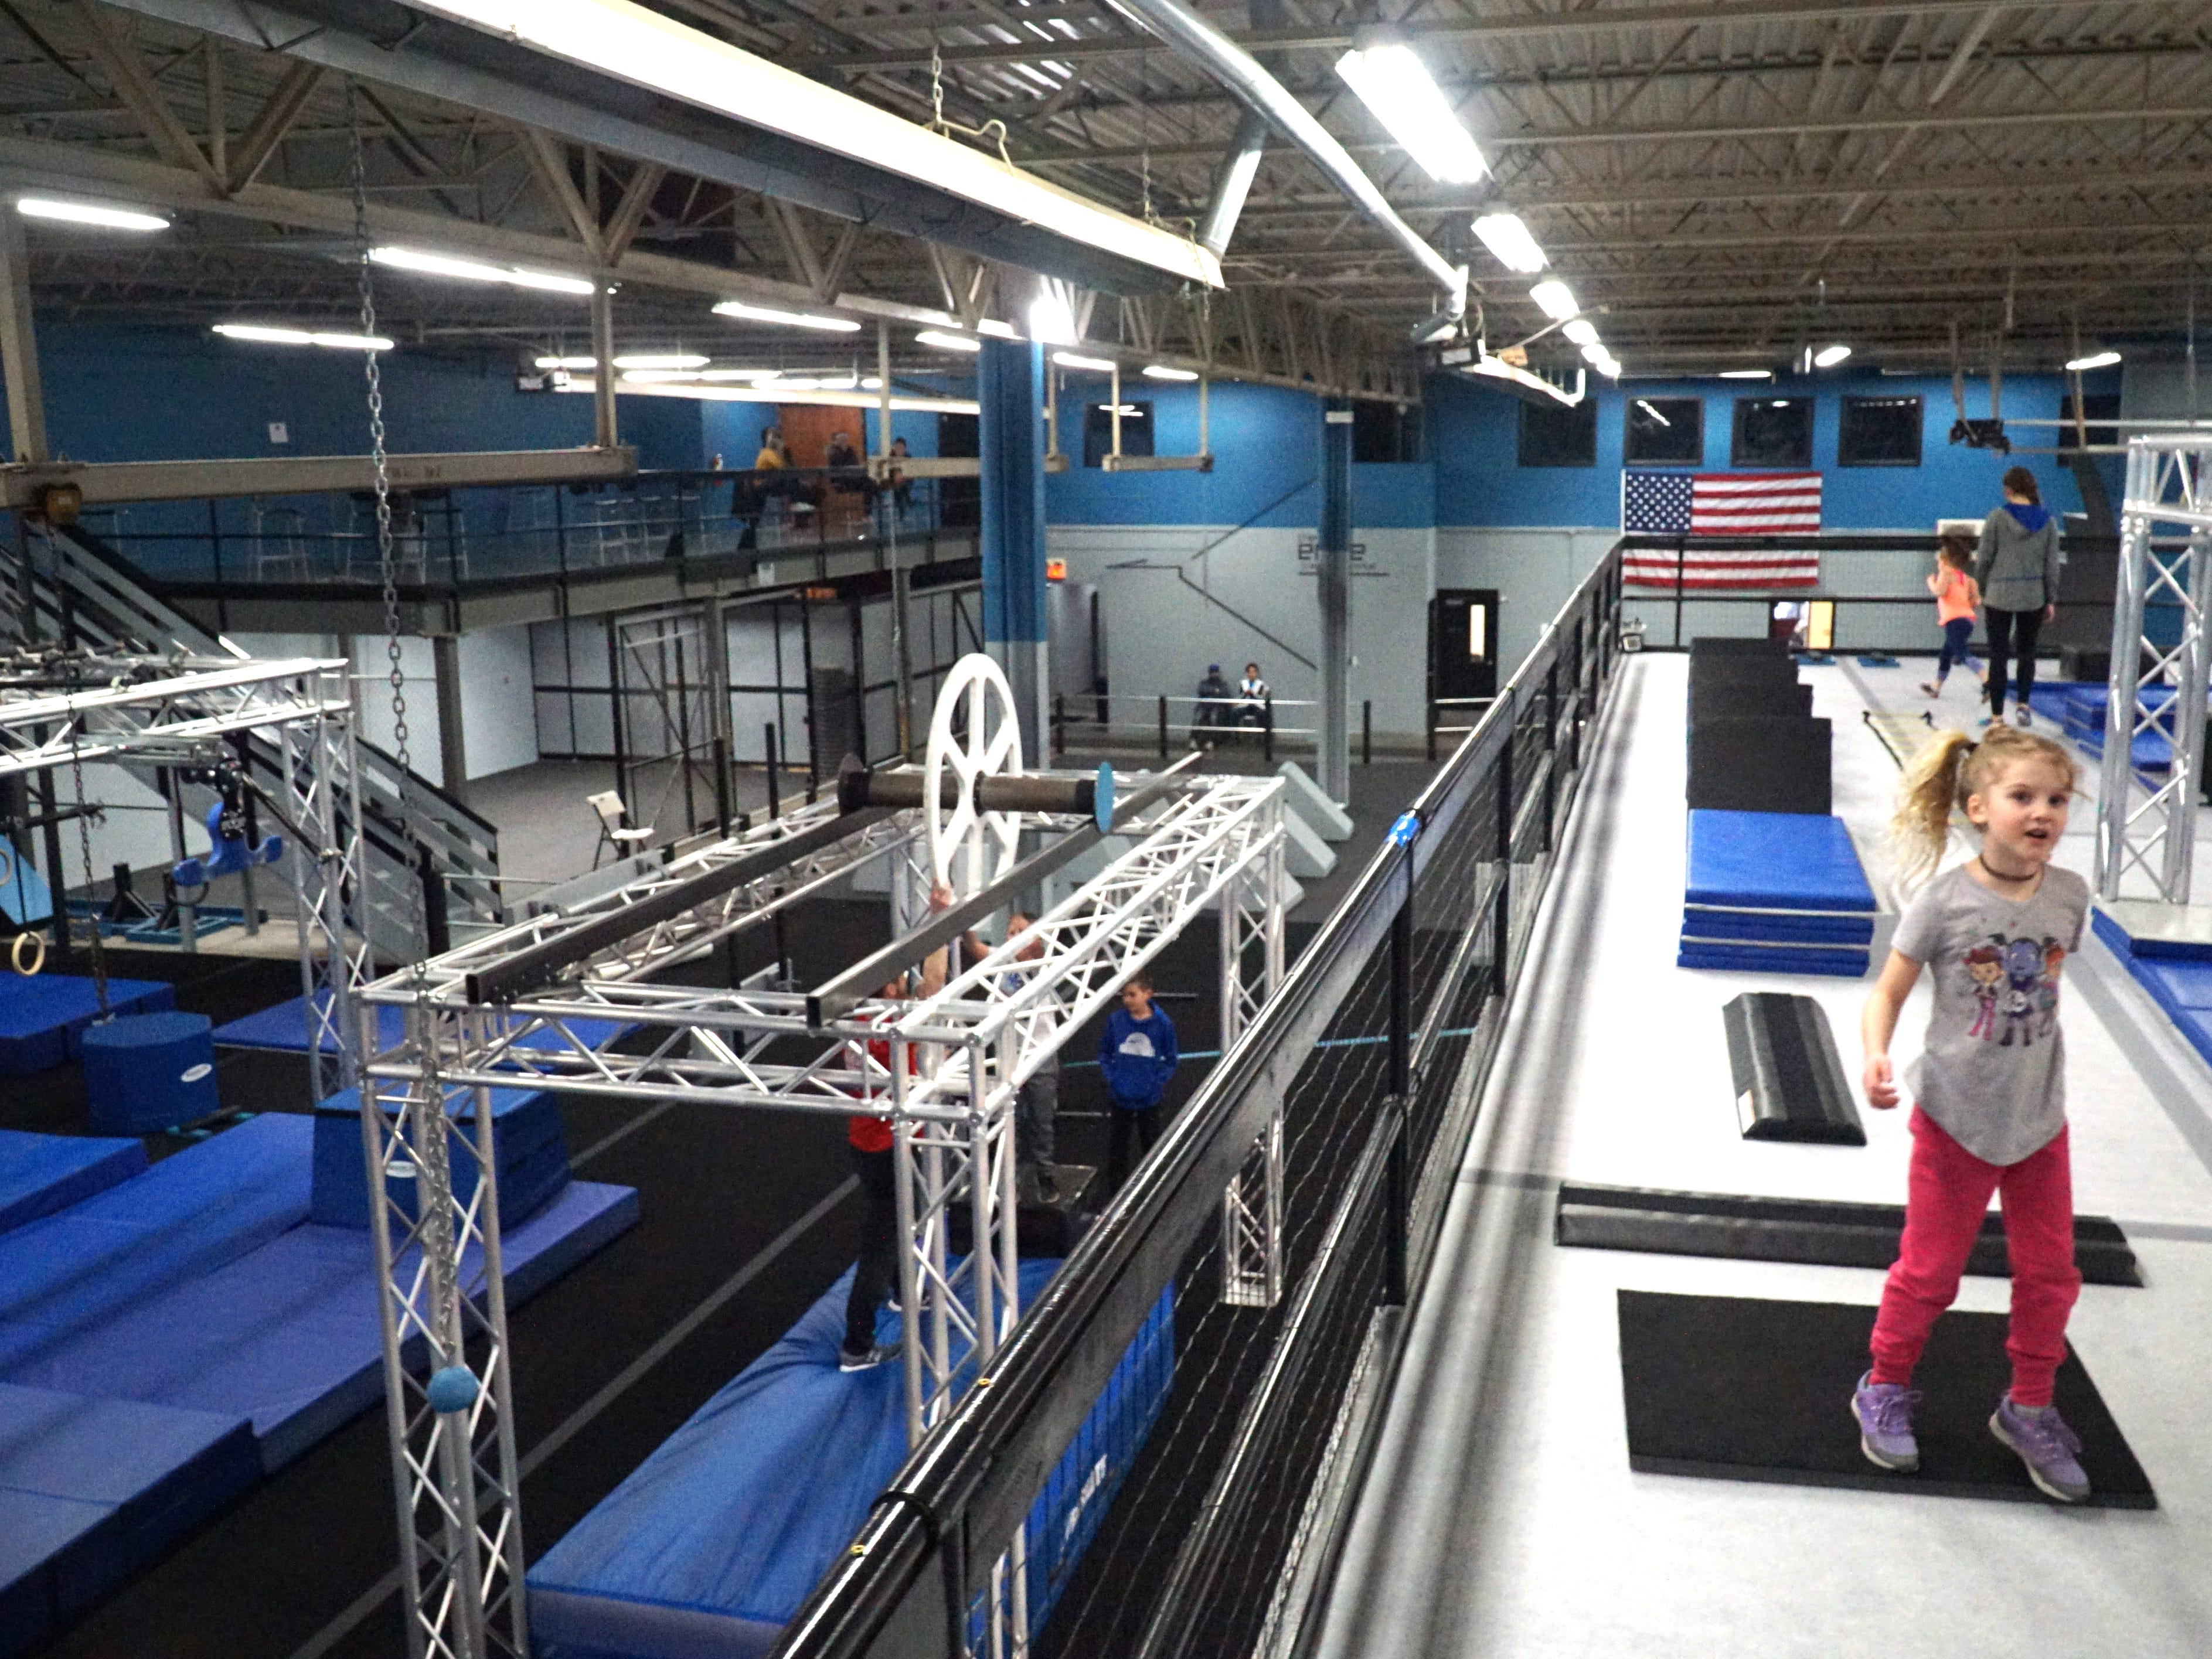 The Edge Training Center has two levels of obstacle course work for its students.